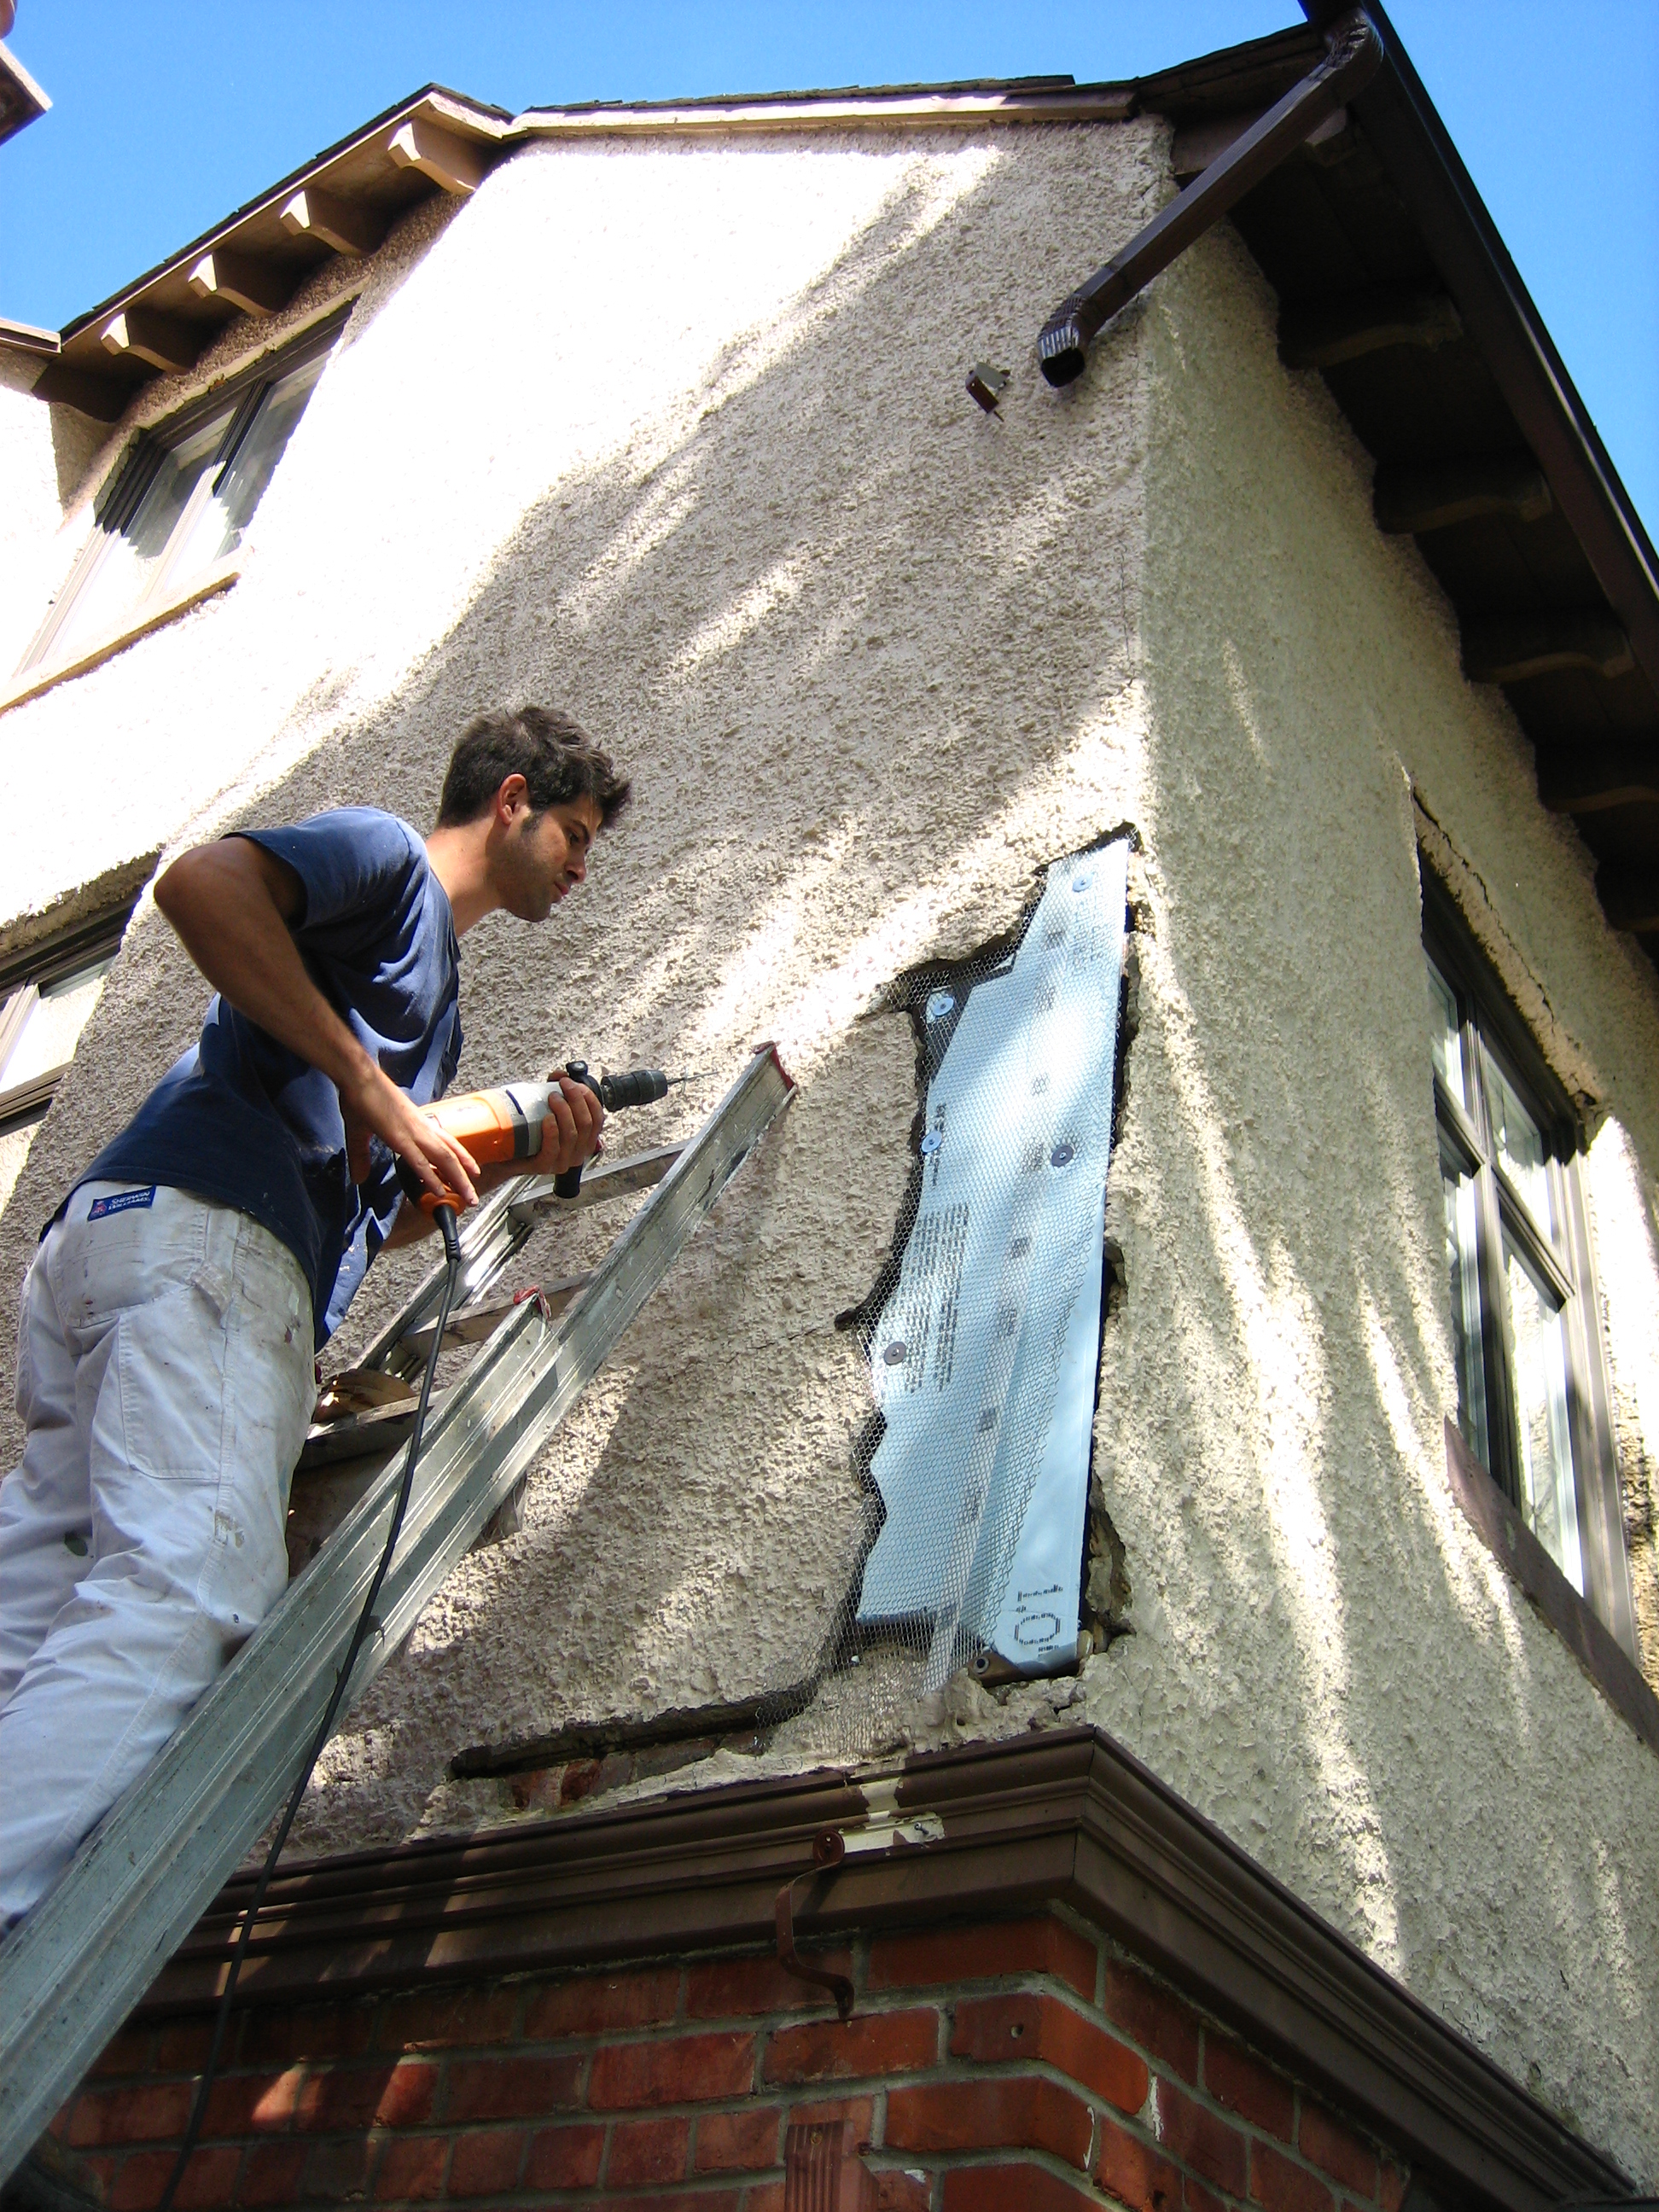 Comment r parer du stuc peinture montreal - Peinture stucco video ...